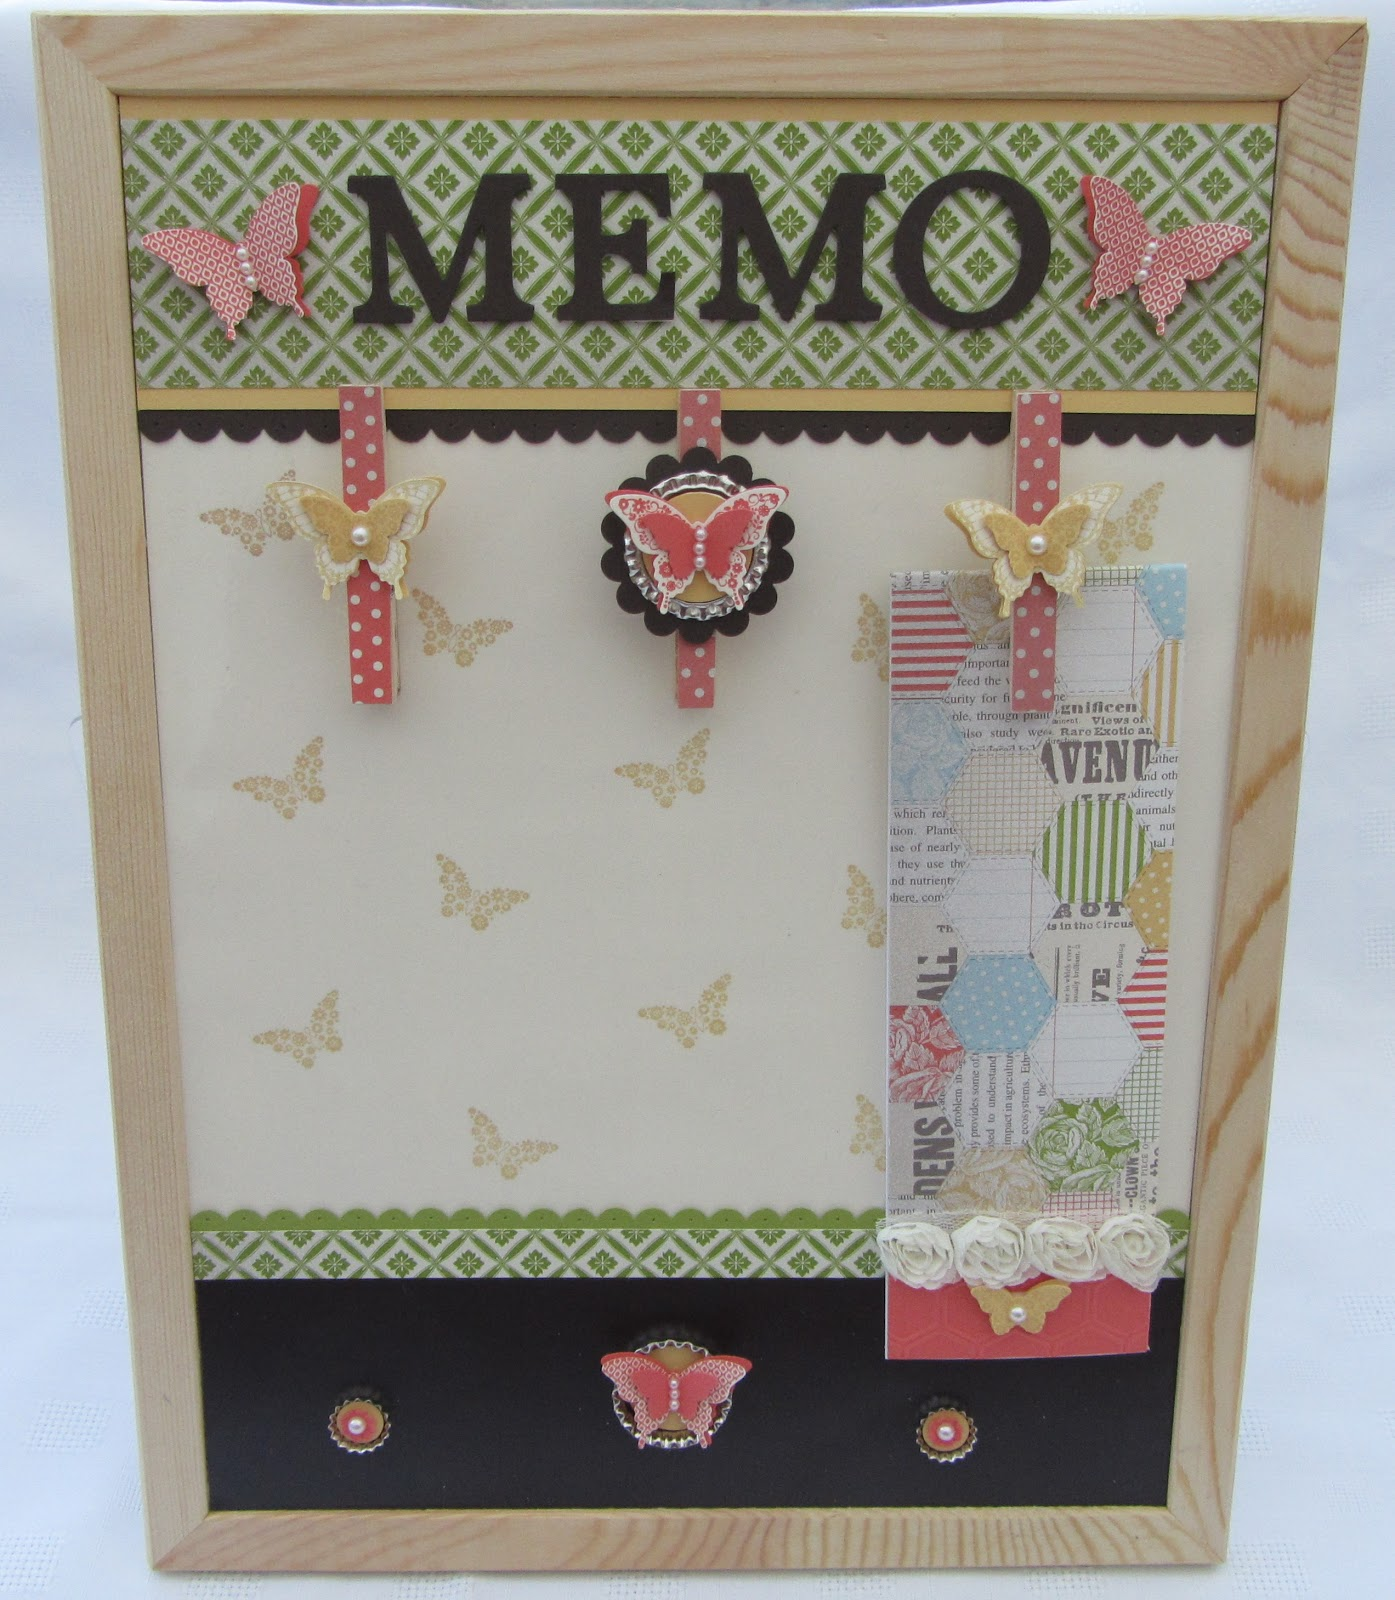 stampin up projects Video gallery: 3d projects painted with love valentine box read more hedgehugs valentine box stampin' up independent demonstrator #55433 overland park, ks 66221.